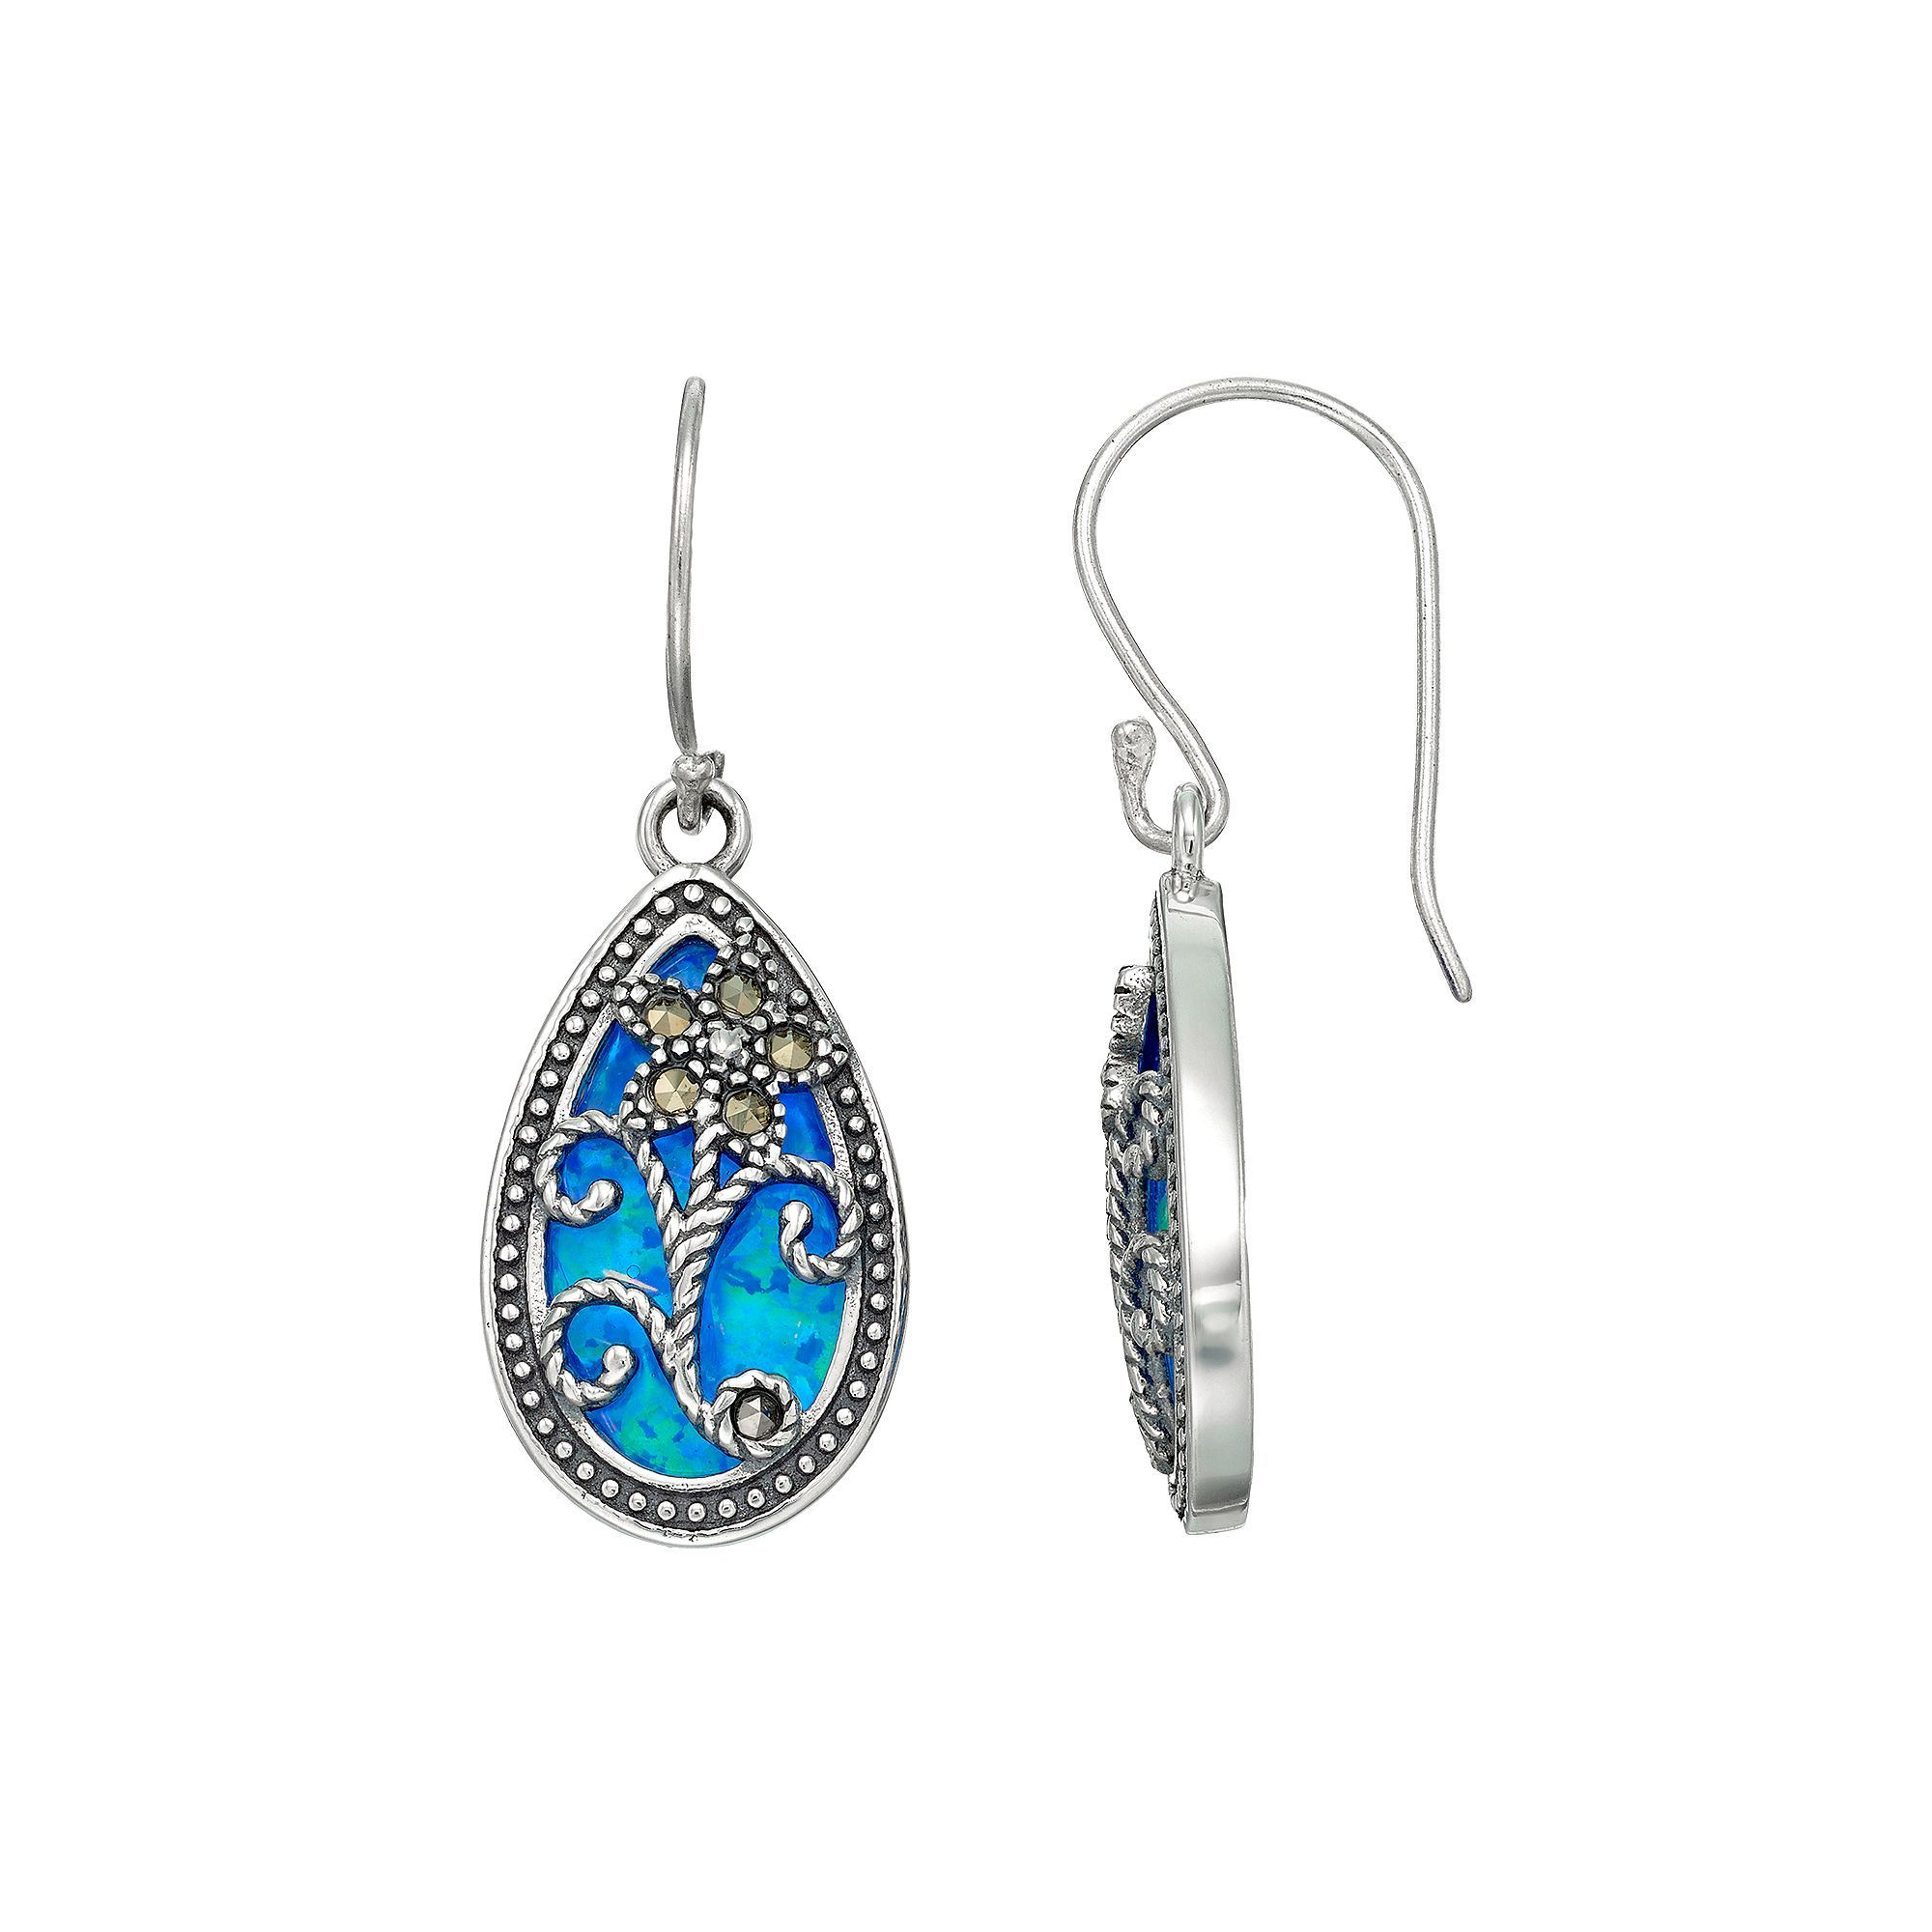 034029c0c Tori Hill Sterling Silver Simulated Blue Opal & Marcasite Floral Teardrop  Earrings, Women's, Grey